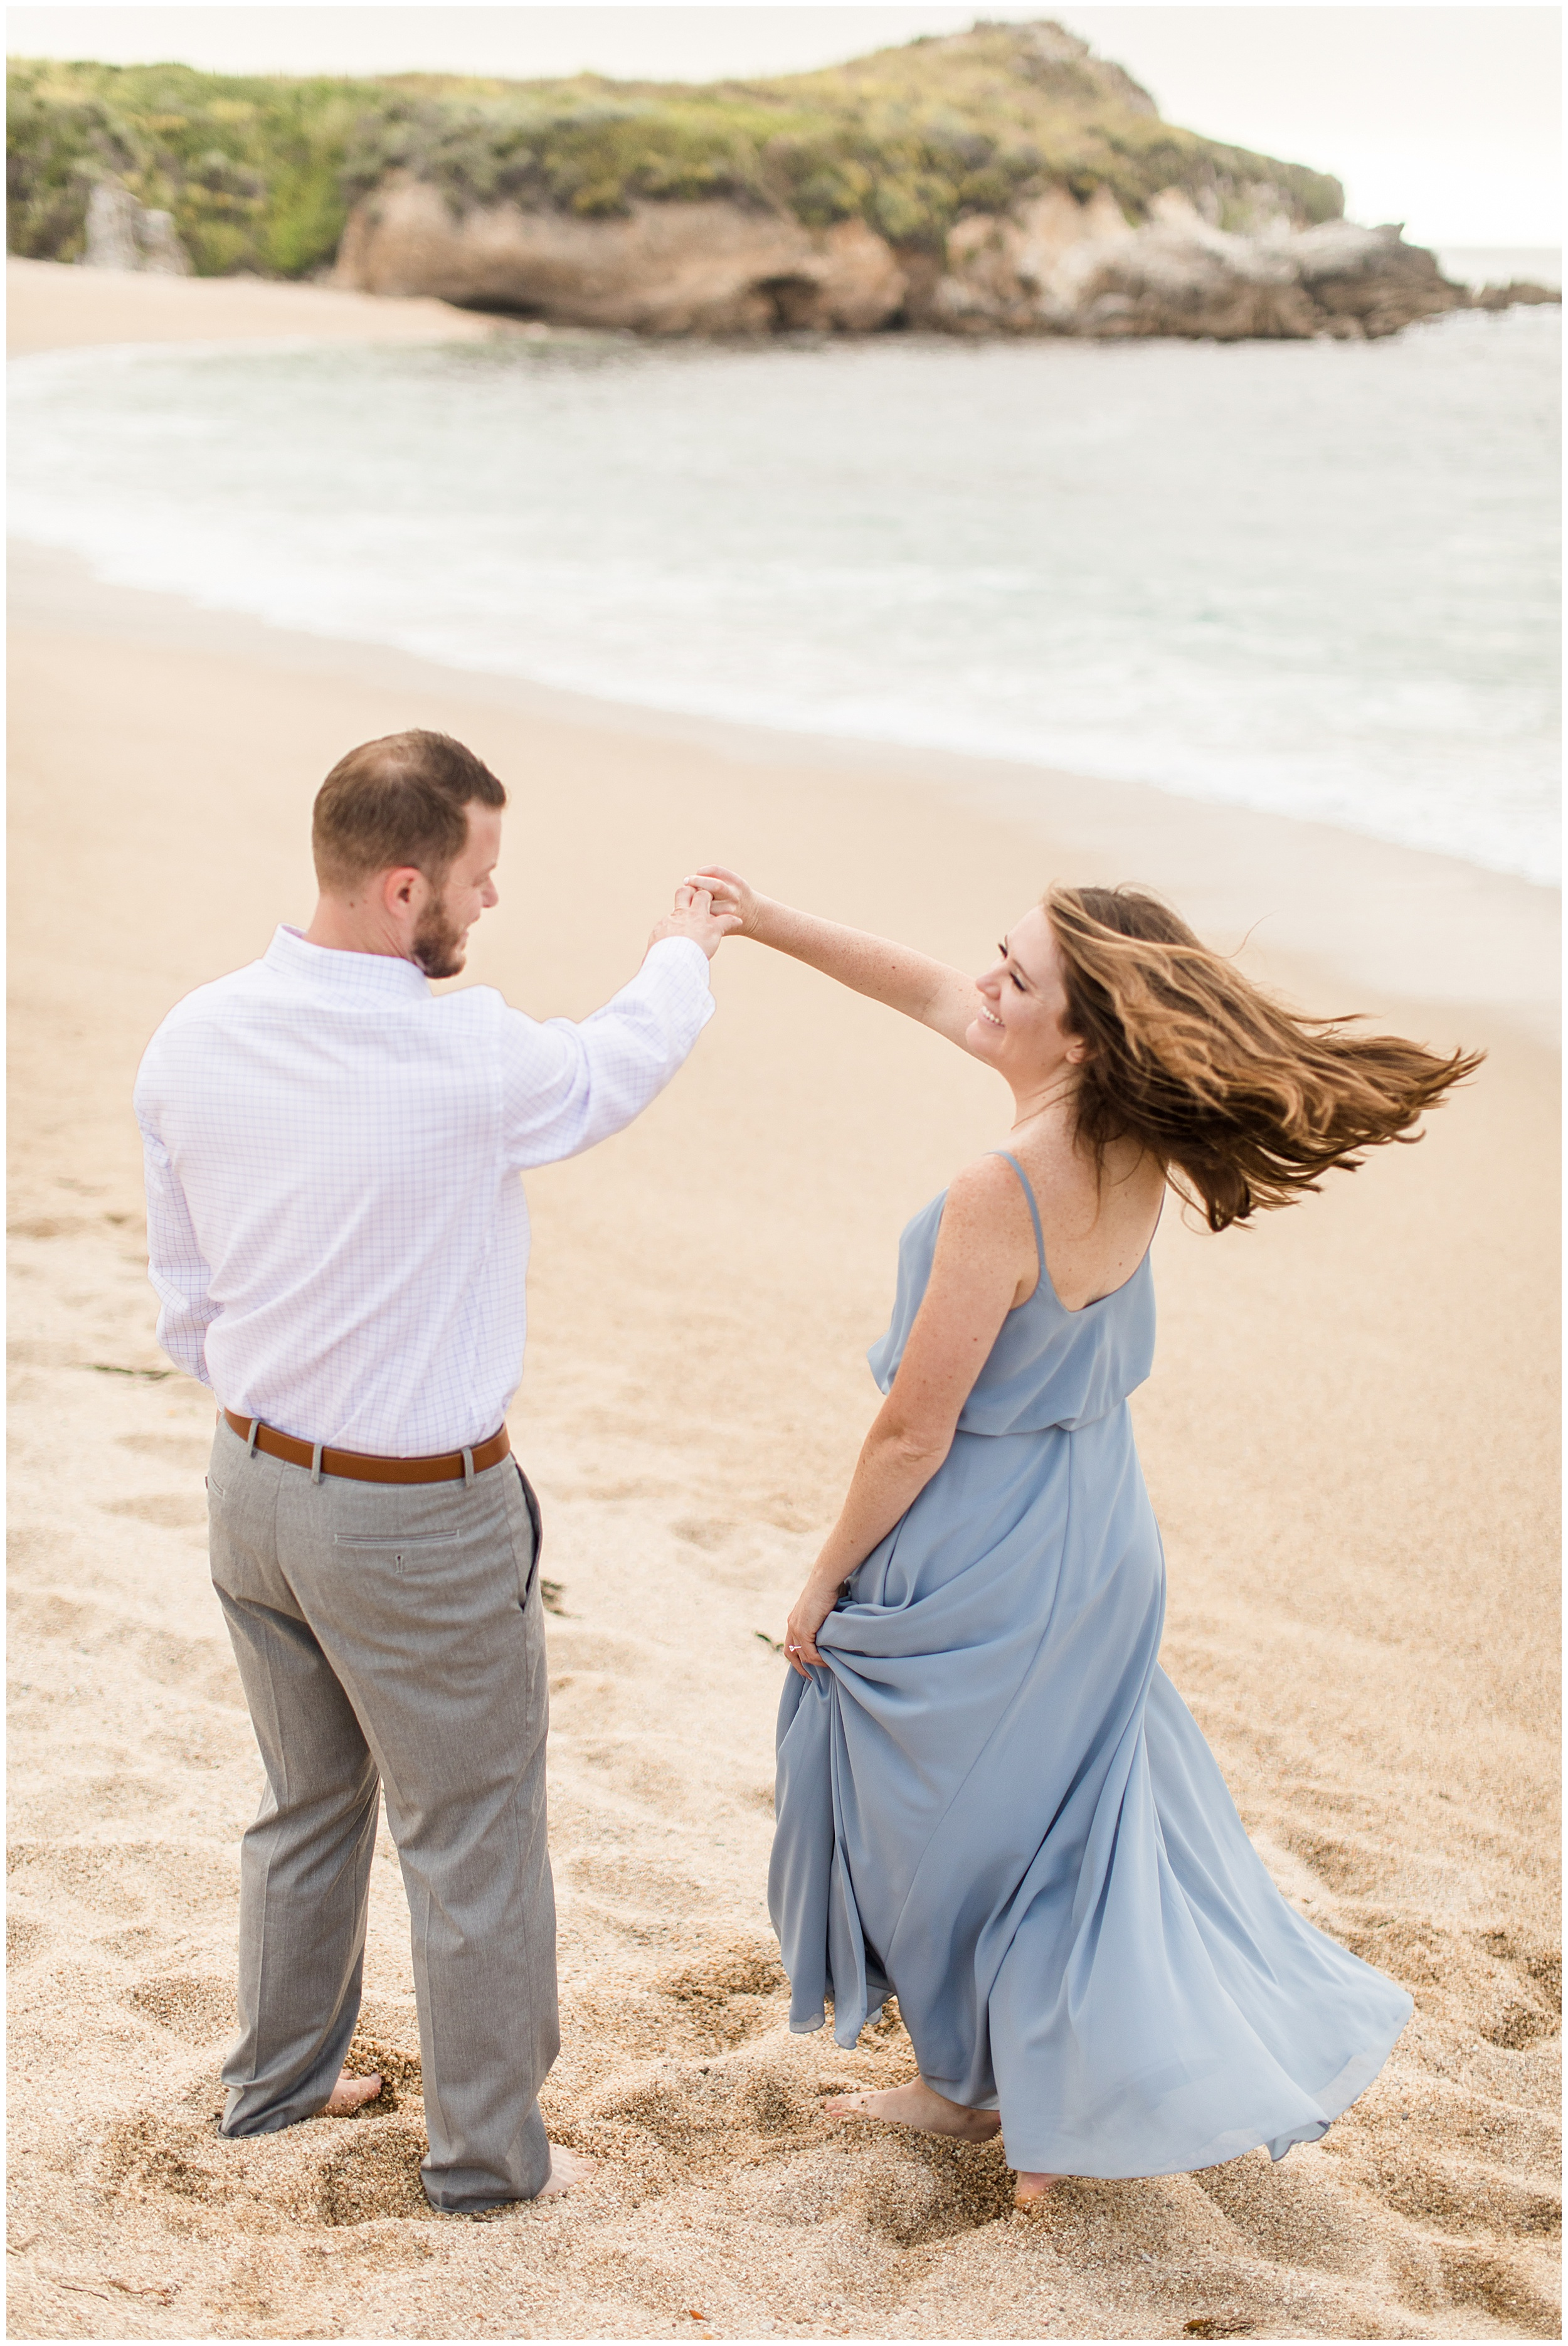 2019 carmel by the sea surprise proposal engagement session wedding photographer angela sue photography_0024.jpg